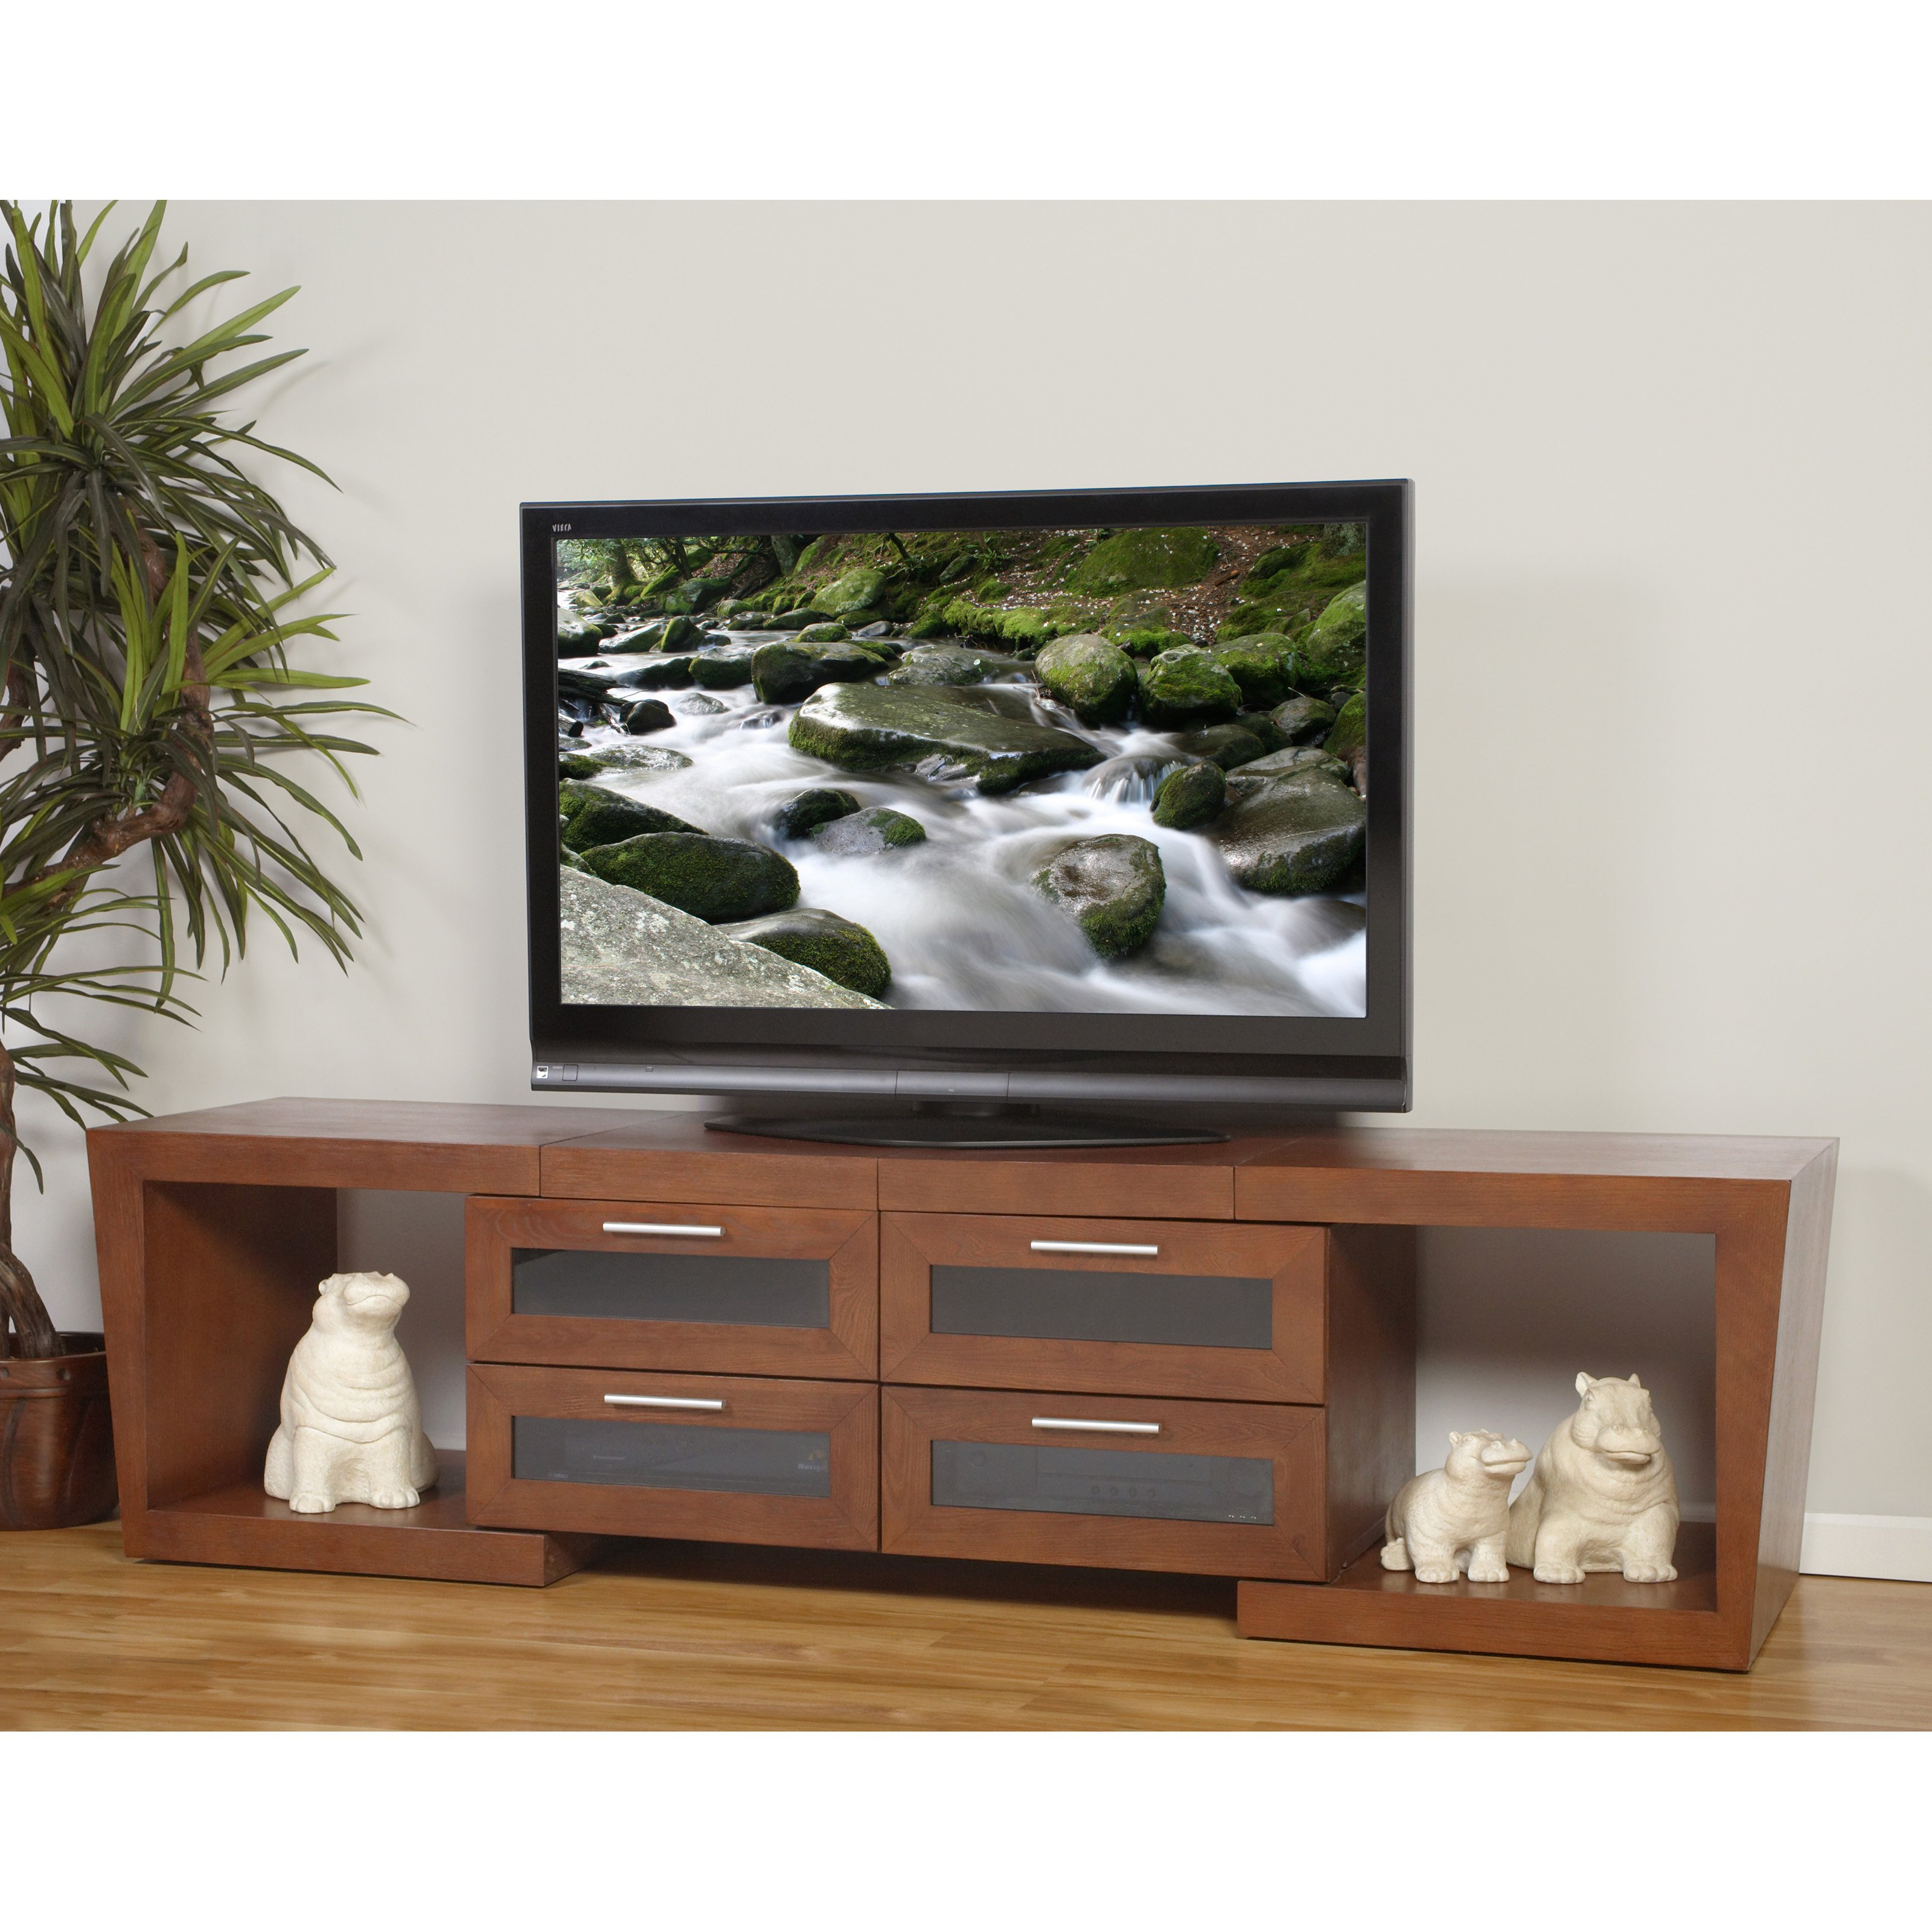 Plateau Valencia 5187 Expandable TV Stand in Walnut